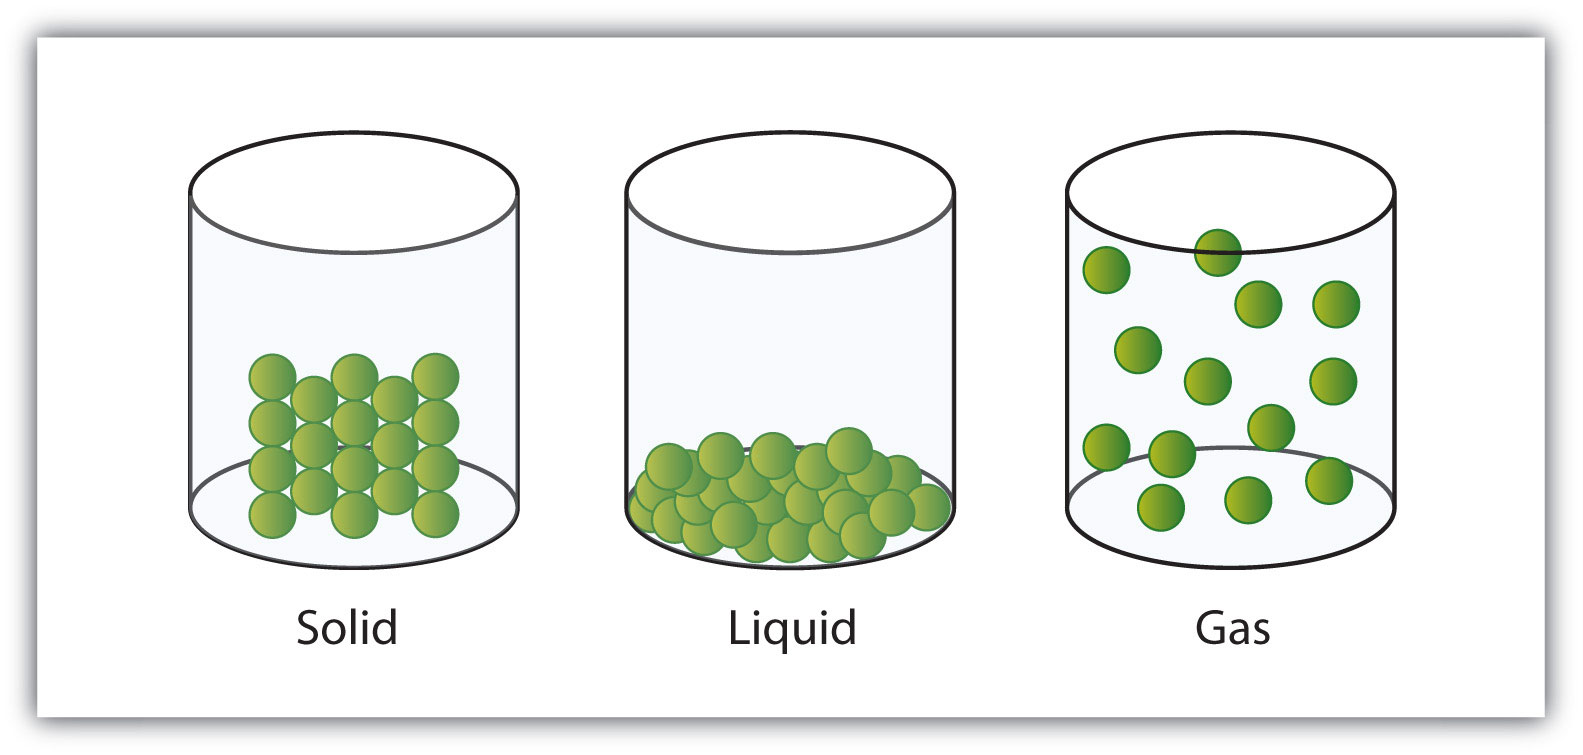 http://2012books.lardbucket.org/books/introduction-to-chemistry-general-organic-and-biological/section_11/62049a0bf48e2cb0b024d238707590e3jpg